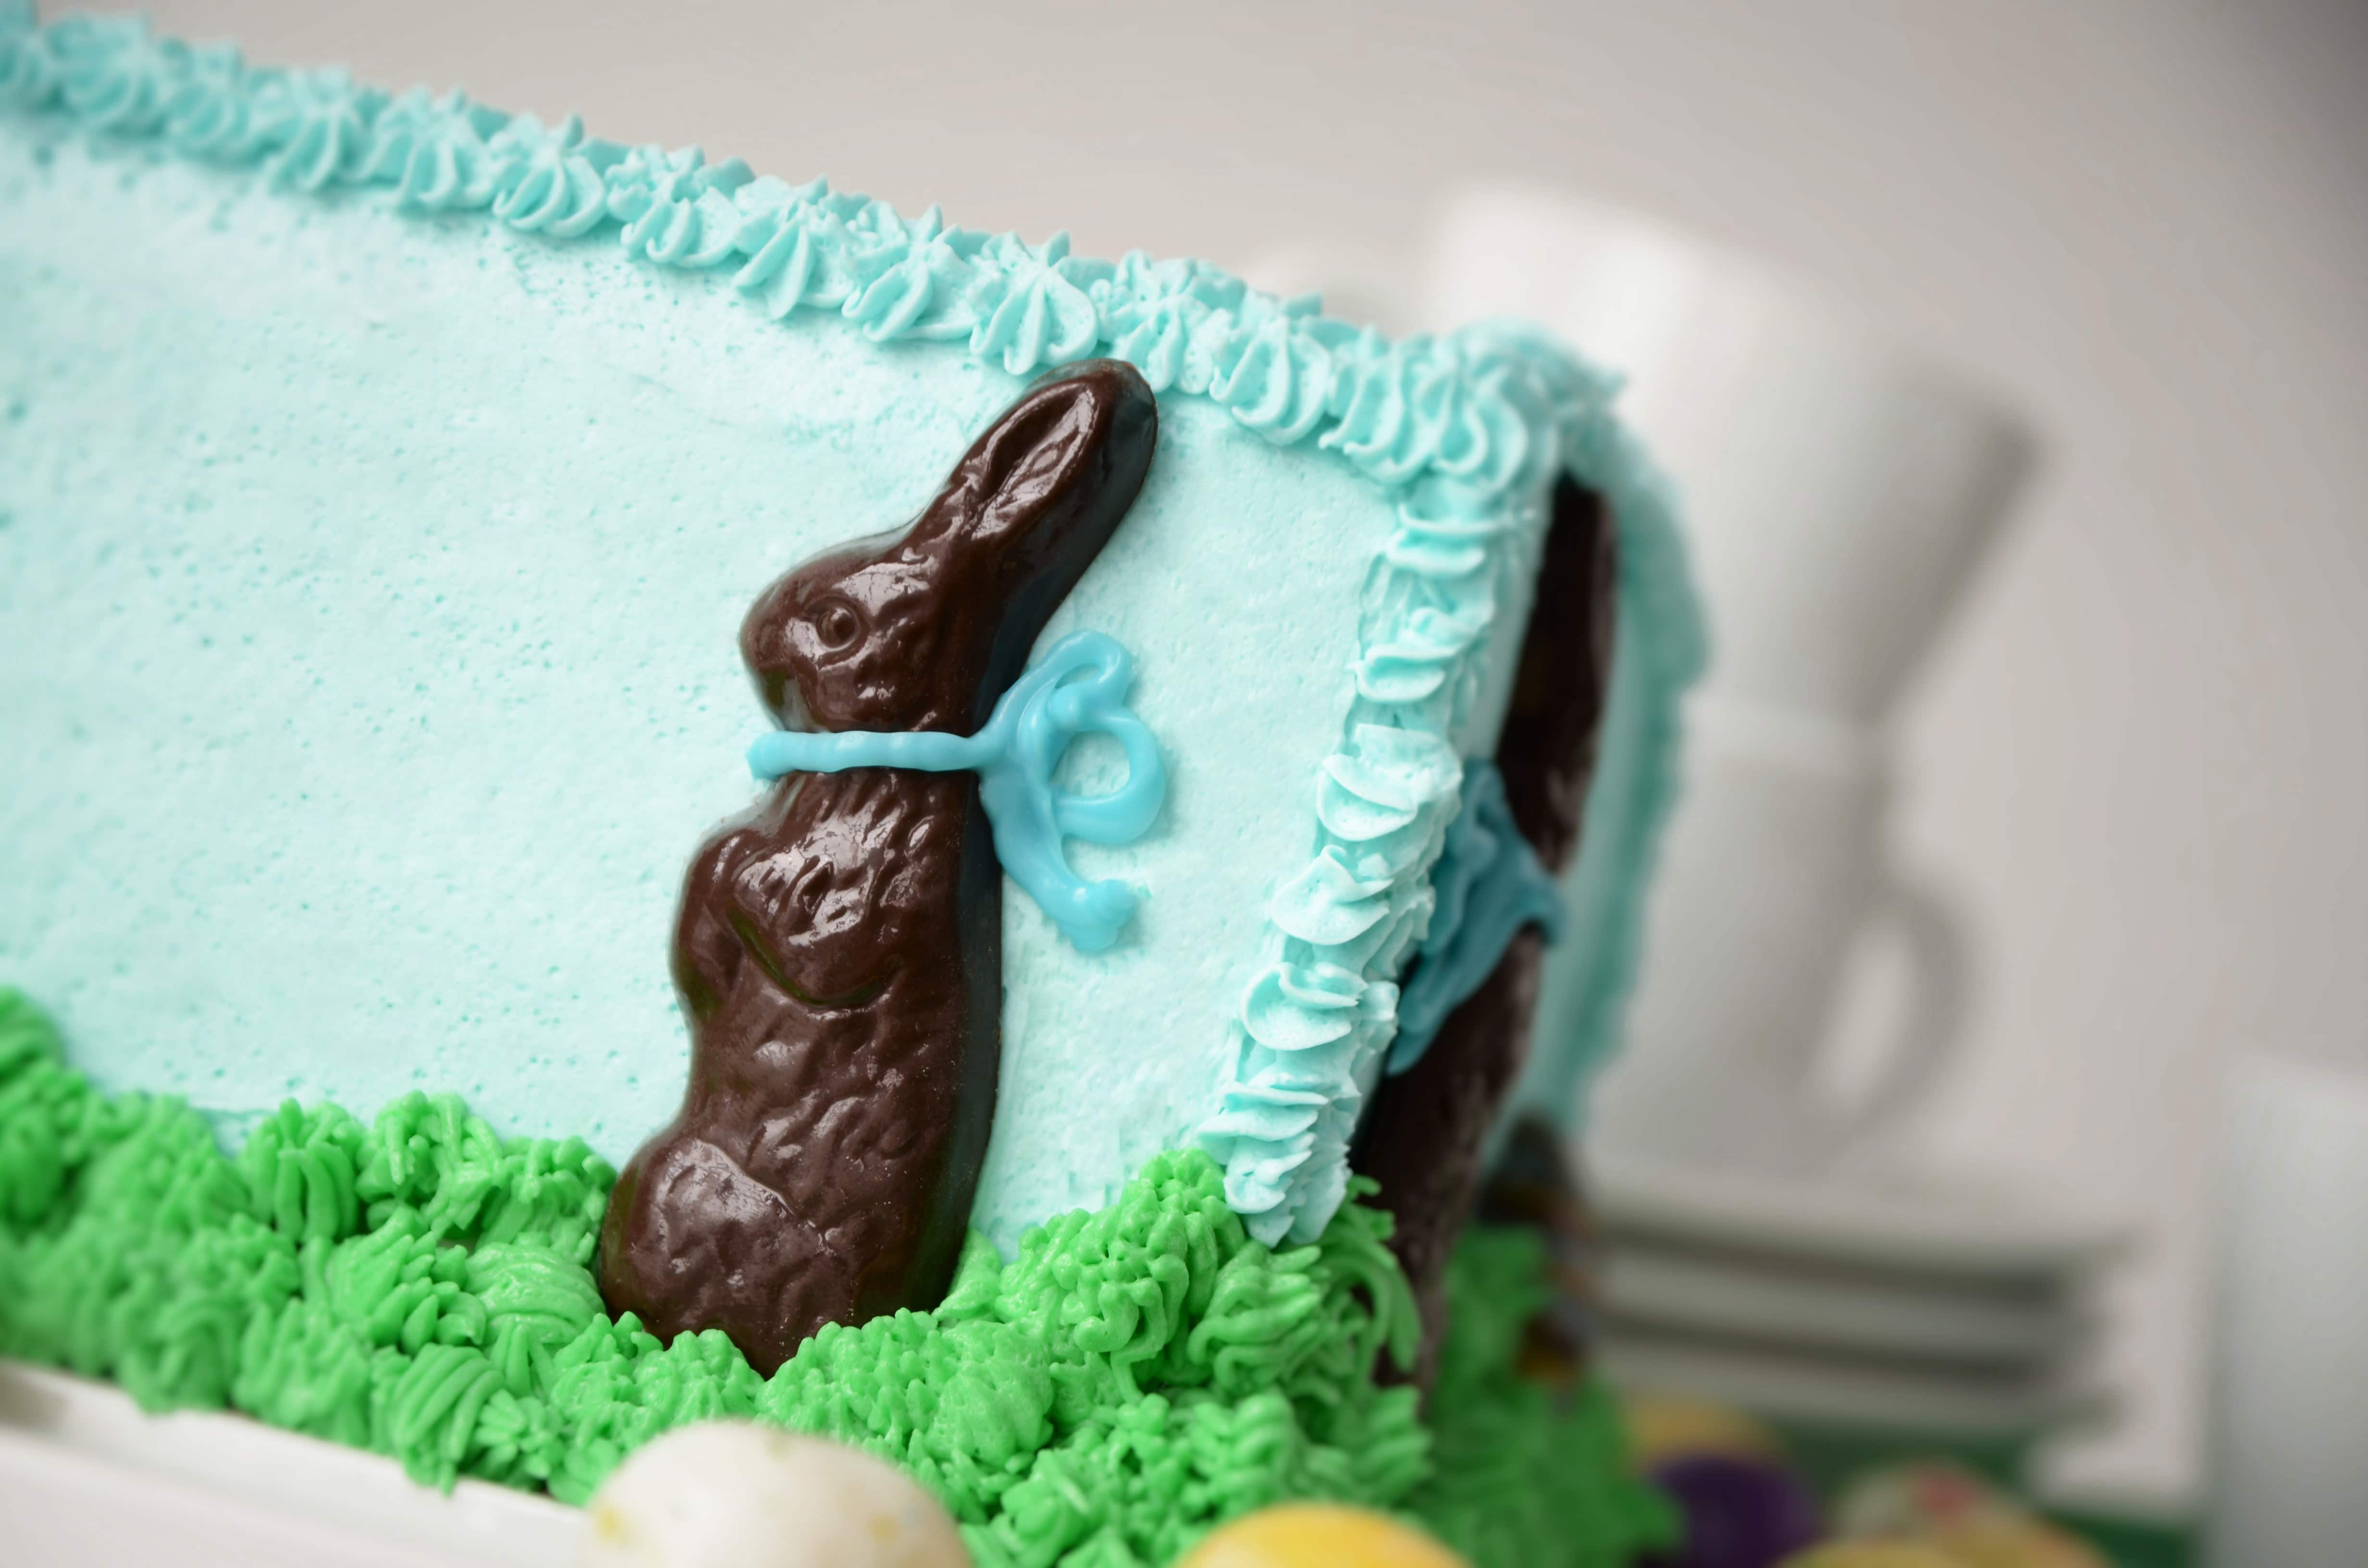 Chocolate Bunny in Grass Cake Bunny Closeup2 - Chocolate Easter Bunny Cake